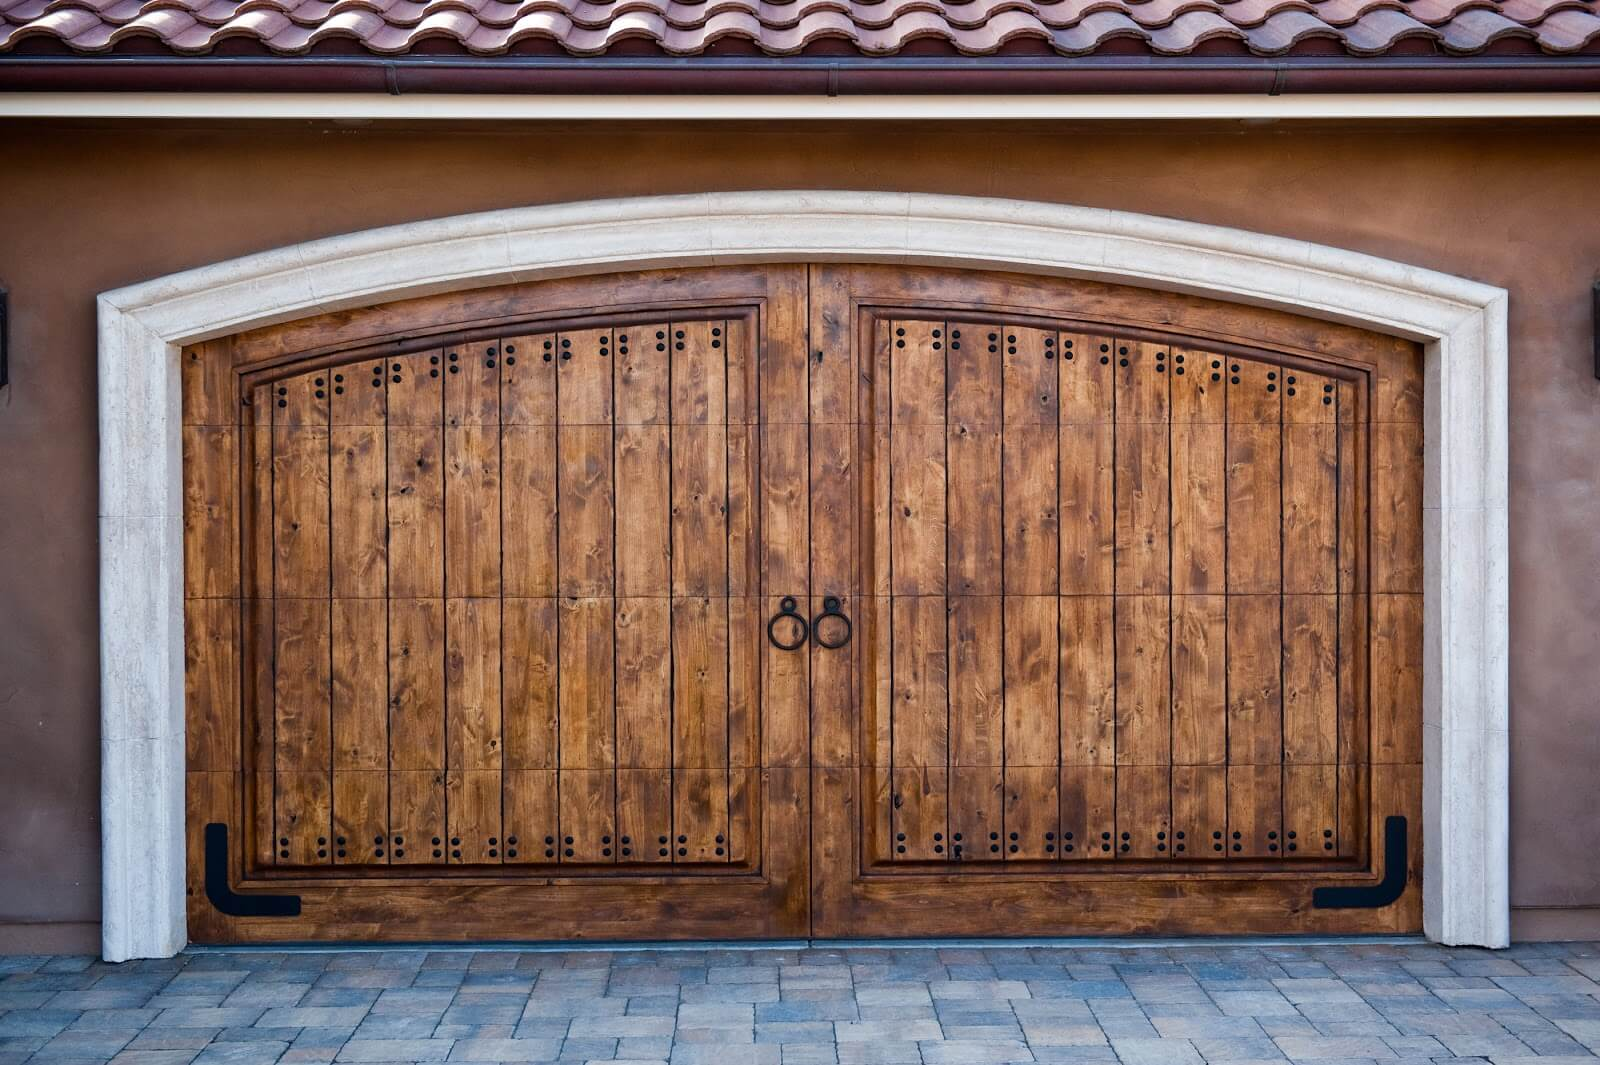 Is A Carriage House Garage Door Right For My Home 𝗣𝗿𝗲𝗰𝗶𝘀𝗶𝗼𝗻 𝗚𝗮𝗿𝗮𝗴𝗲 𝗗𝗼𝗼𝗿𝘀